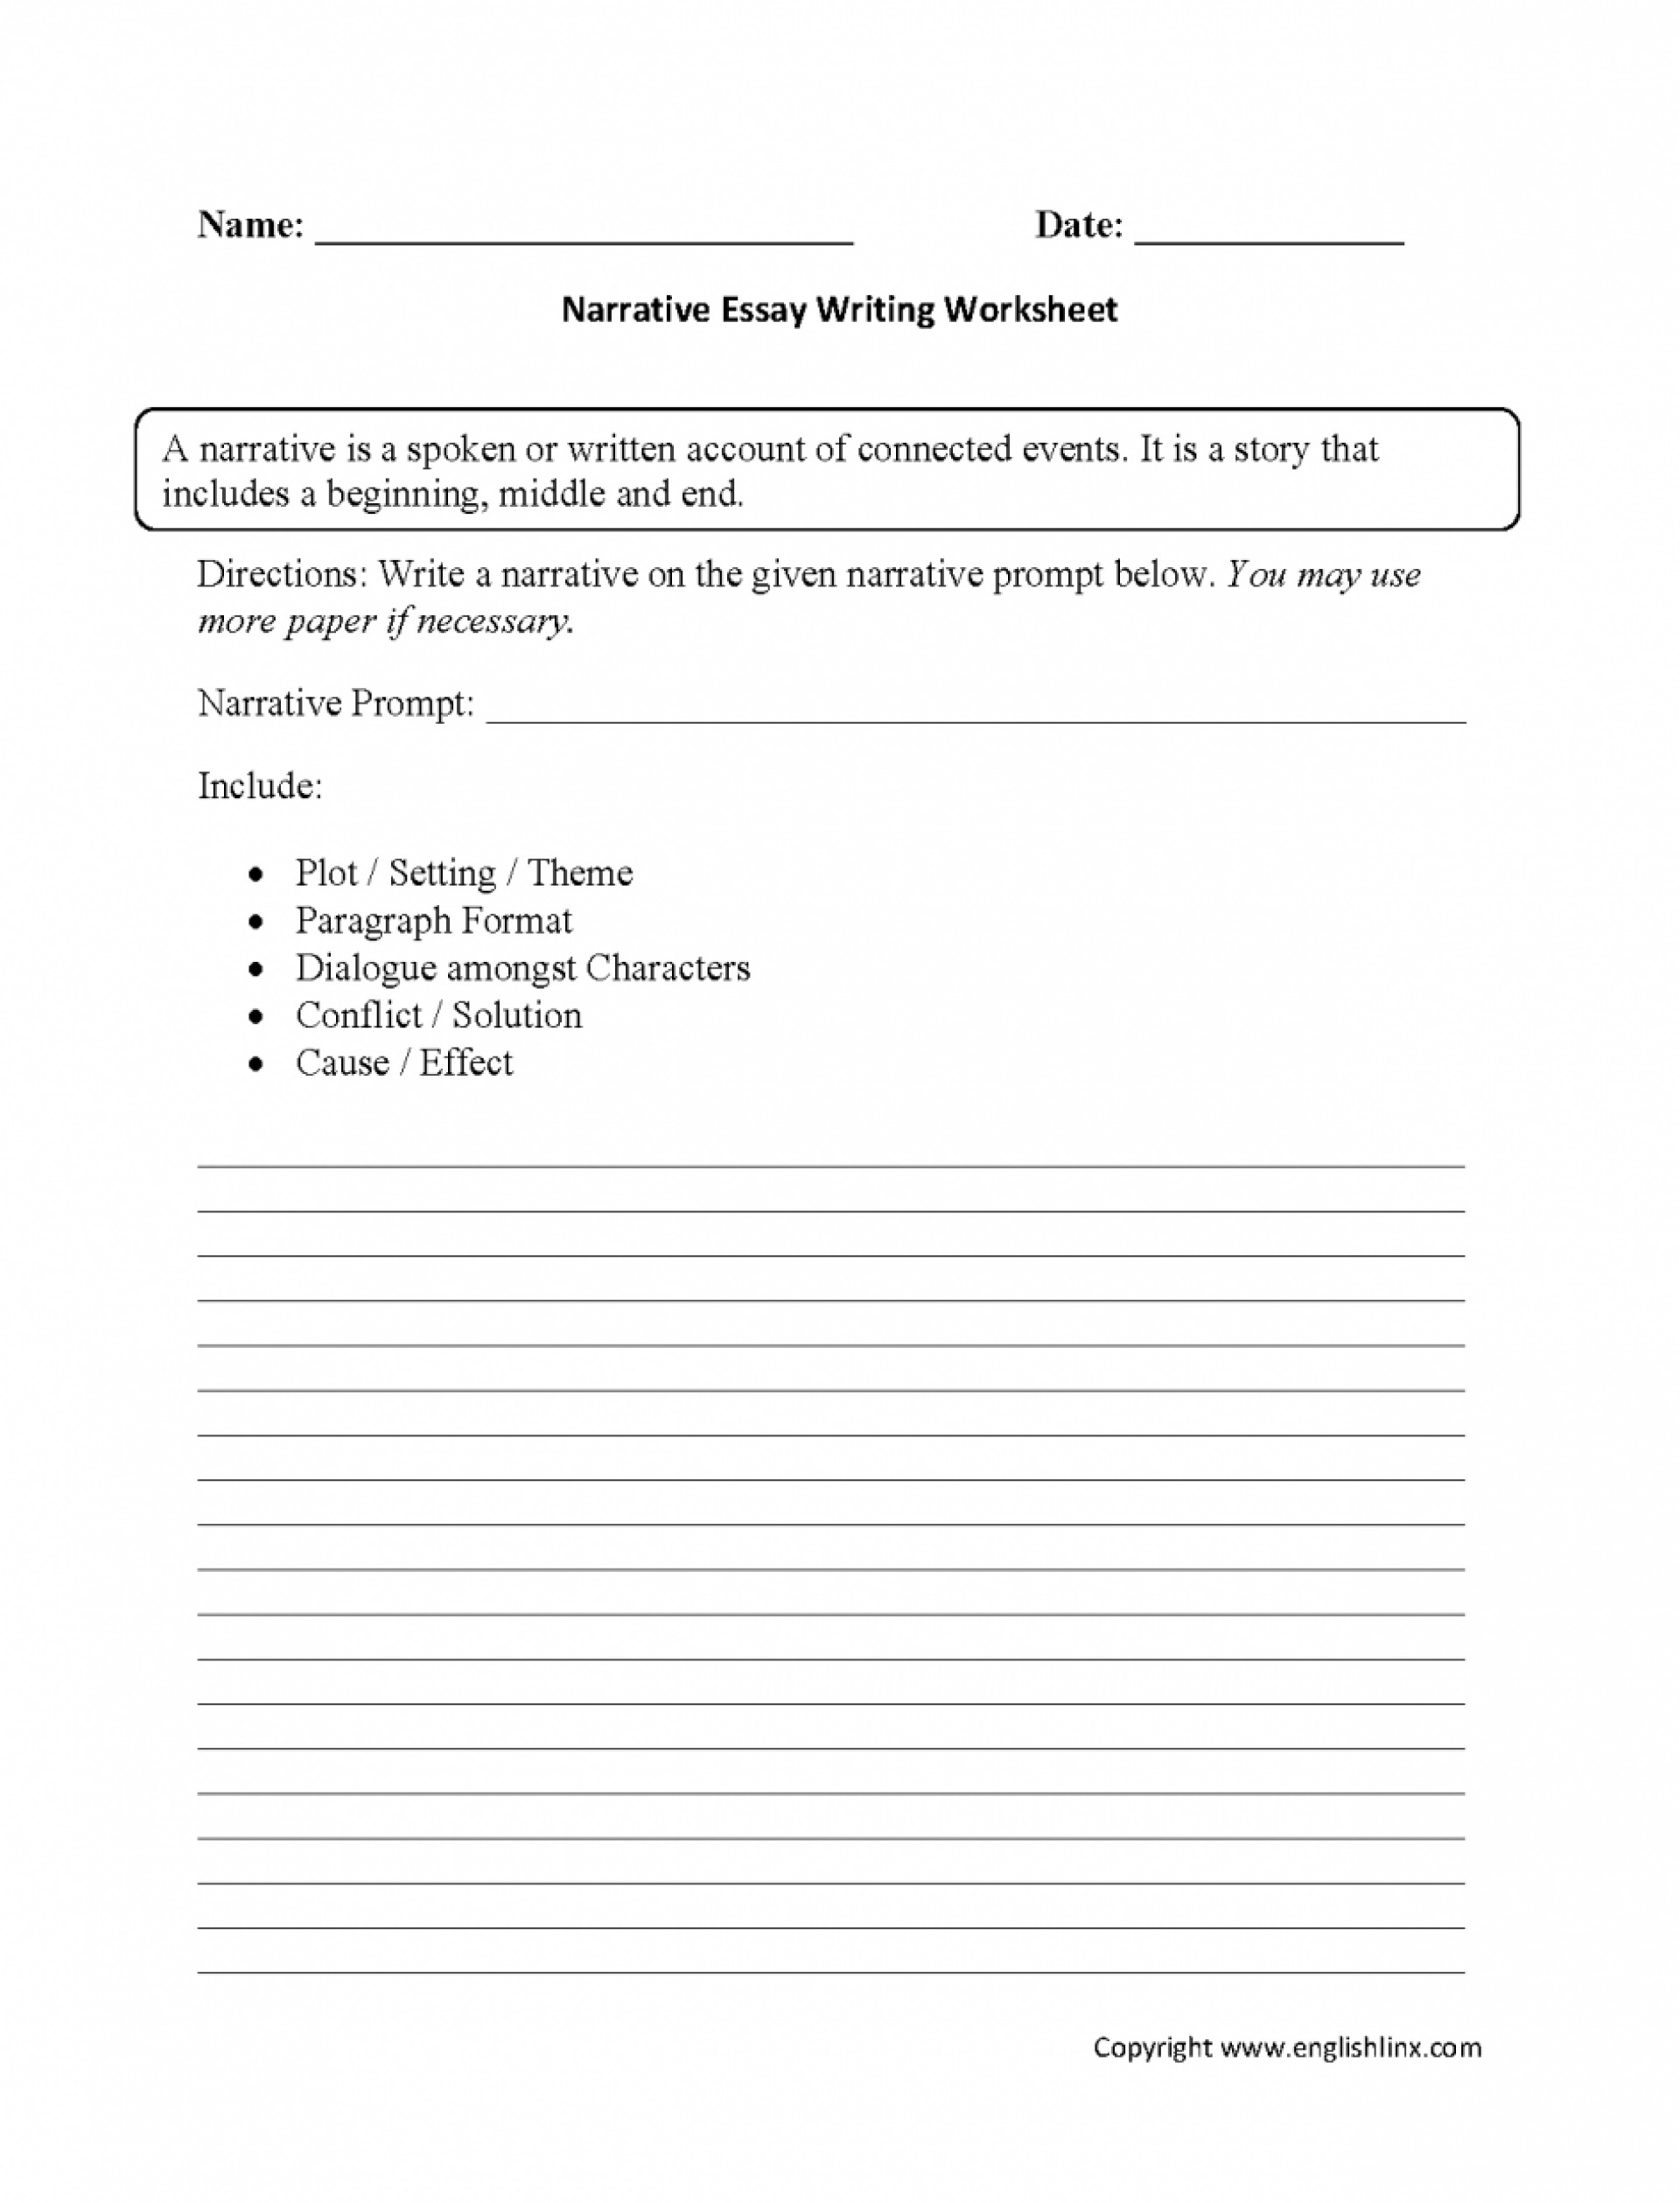 002 Essay Grader Free Example 3rd Grade Paragraph Writing Worksheets Download Third Printa Worksheet Unusual For Teachers Grading Software 1920